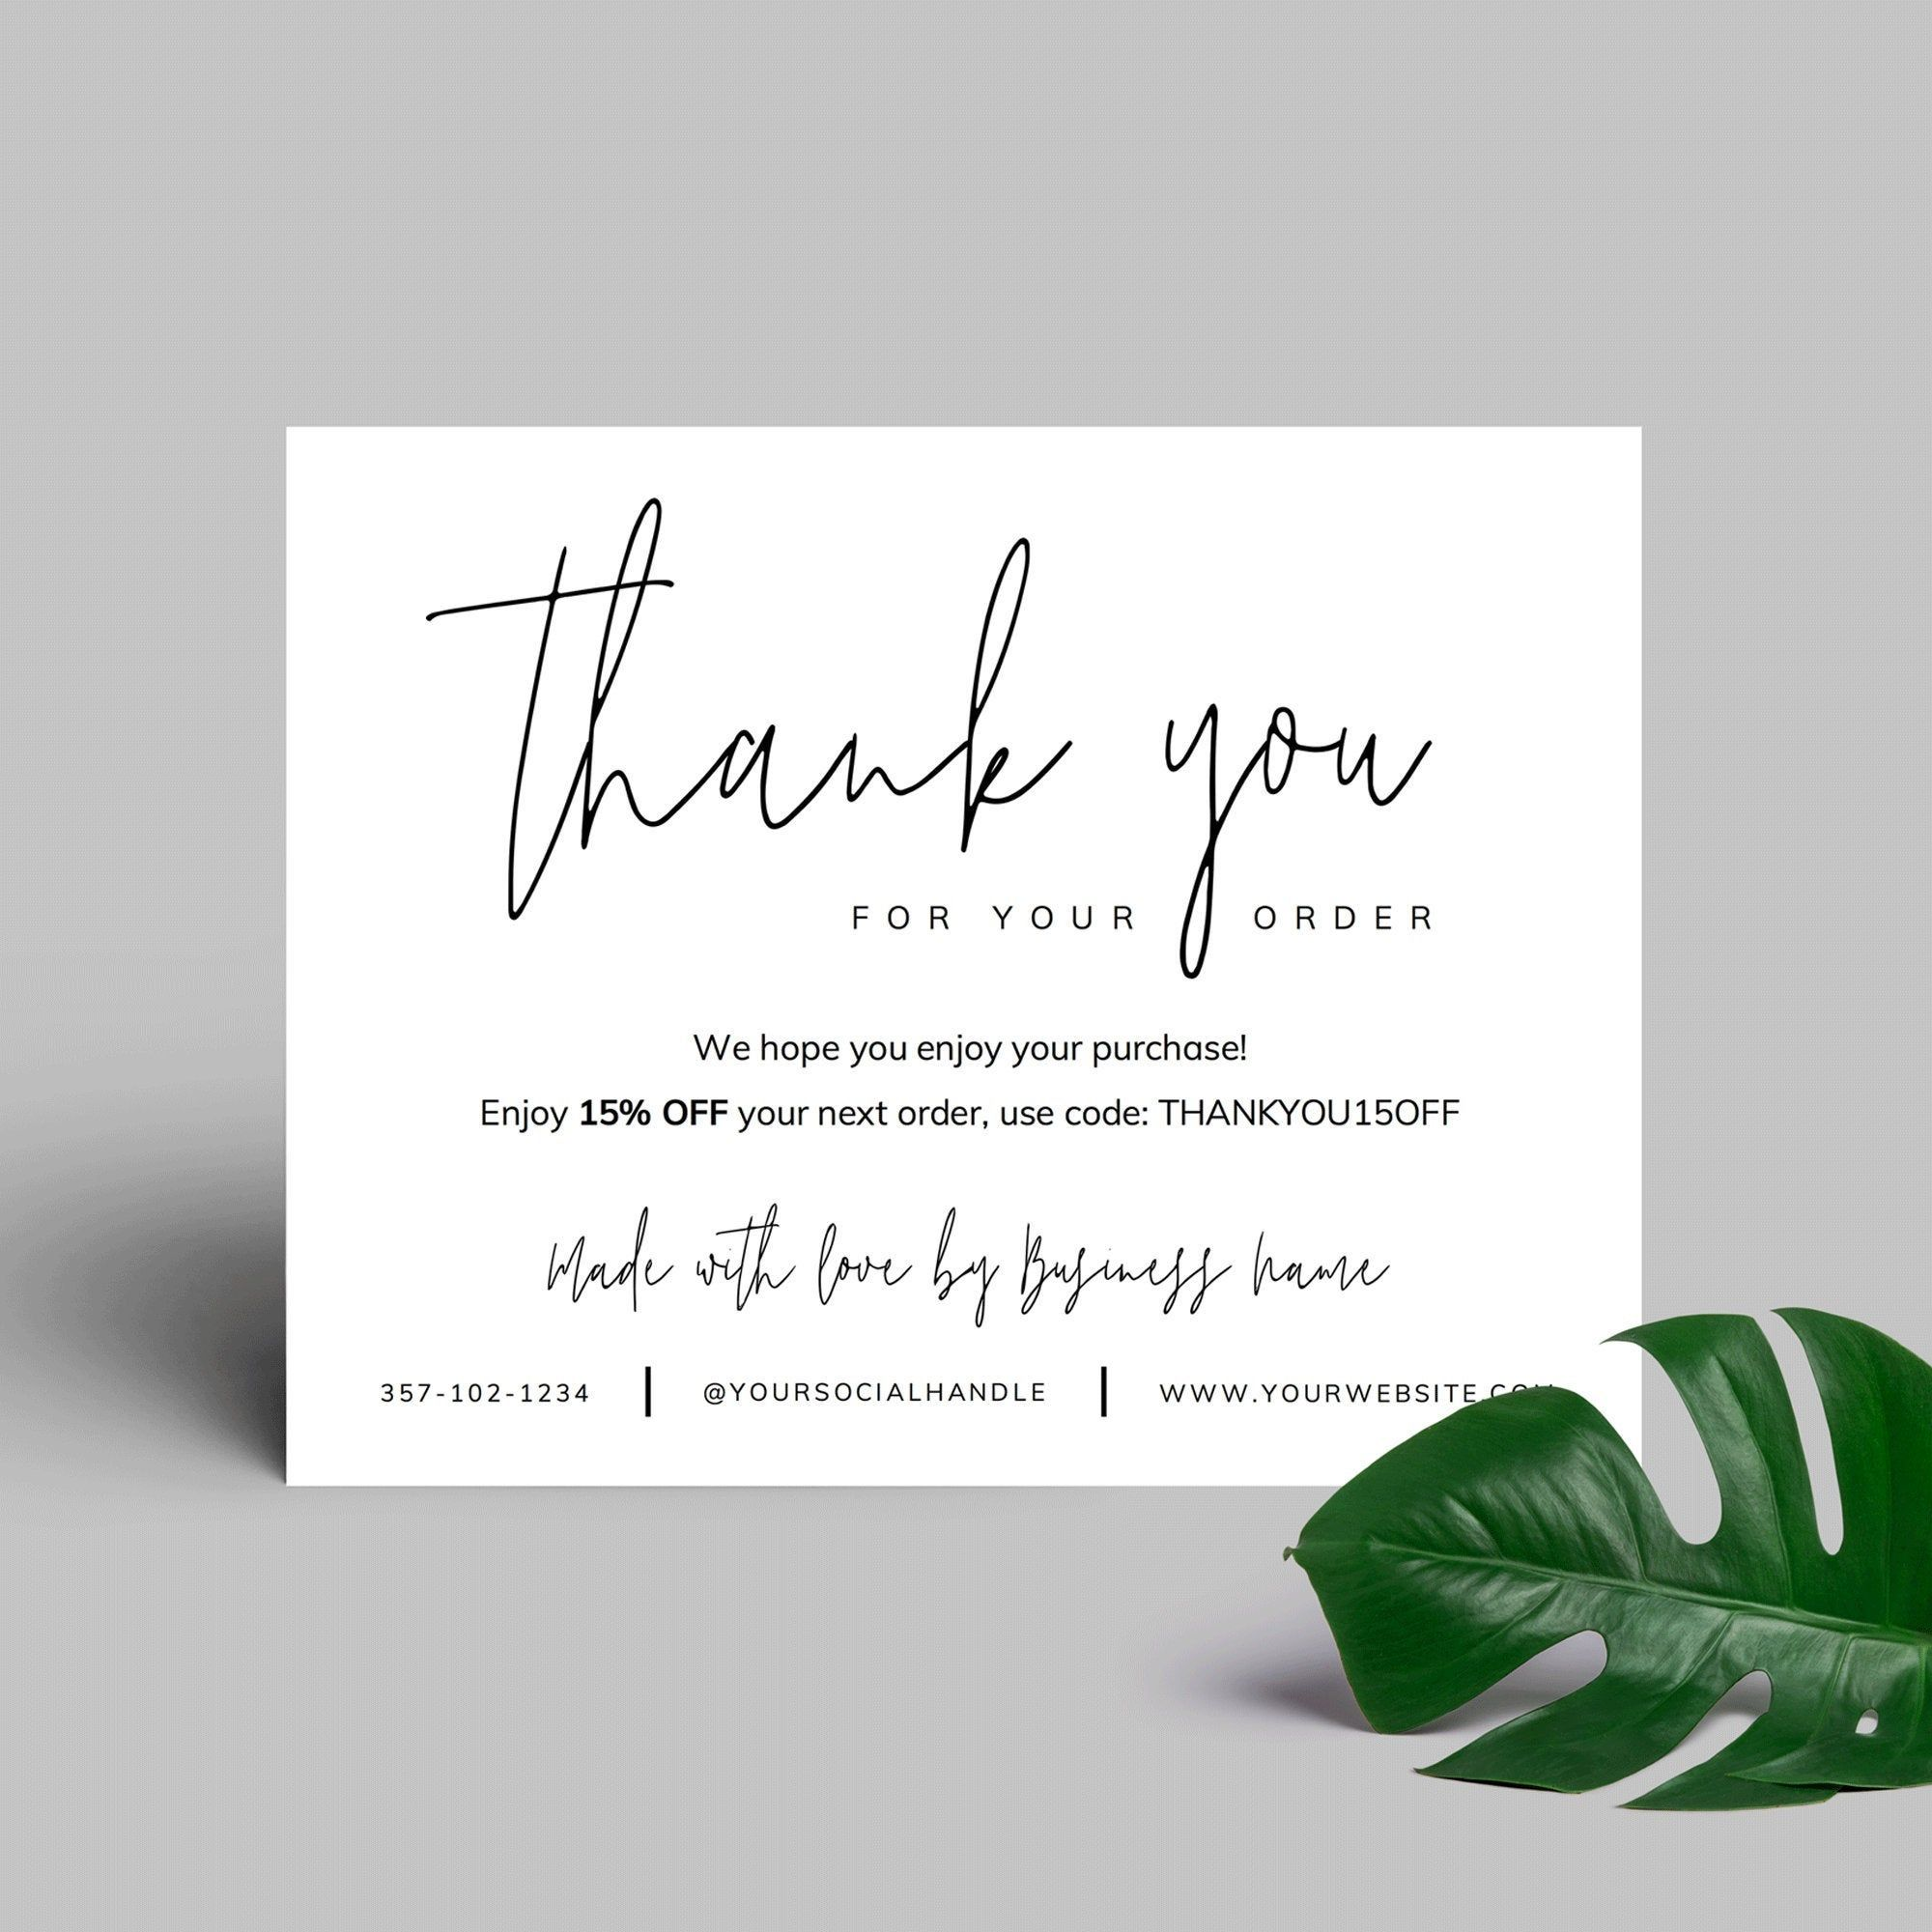 Printable Business Thank You Card Template Corjl | Thank you for your order | Thank you package inserts | Customer thank you for purchase